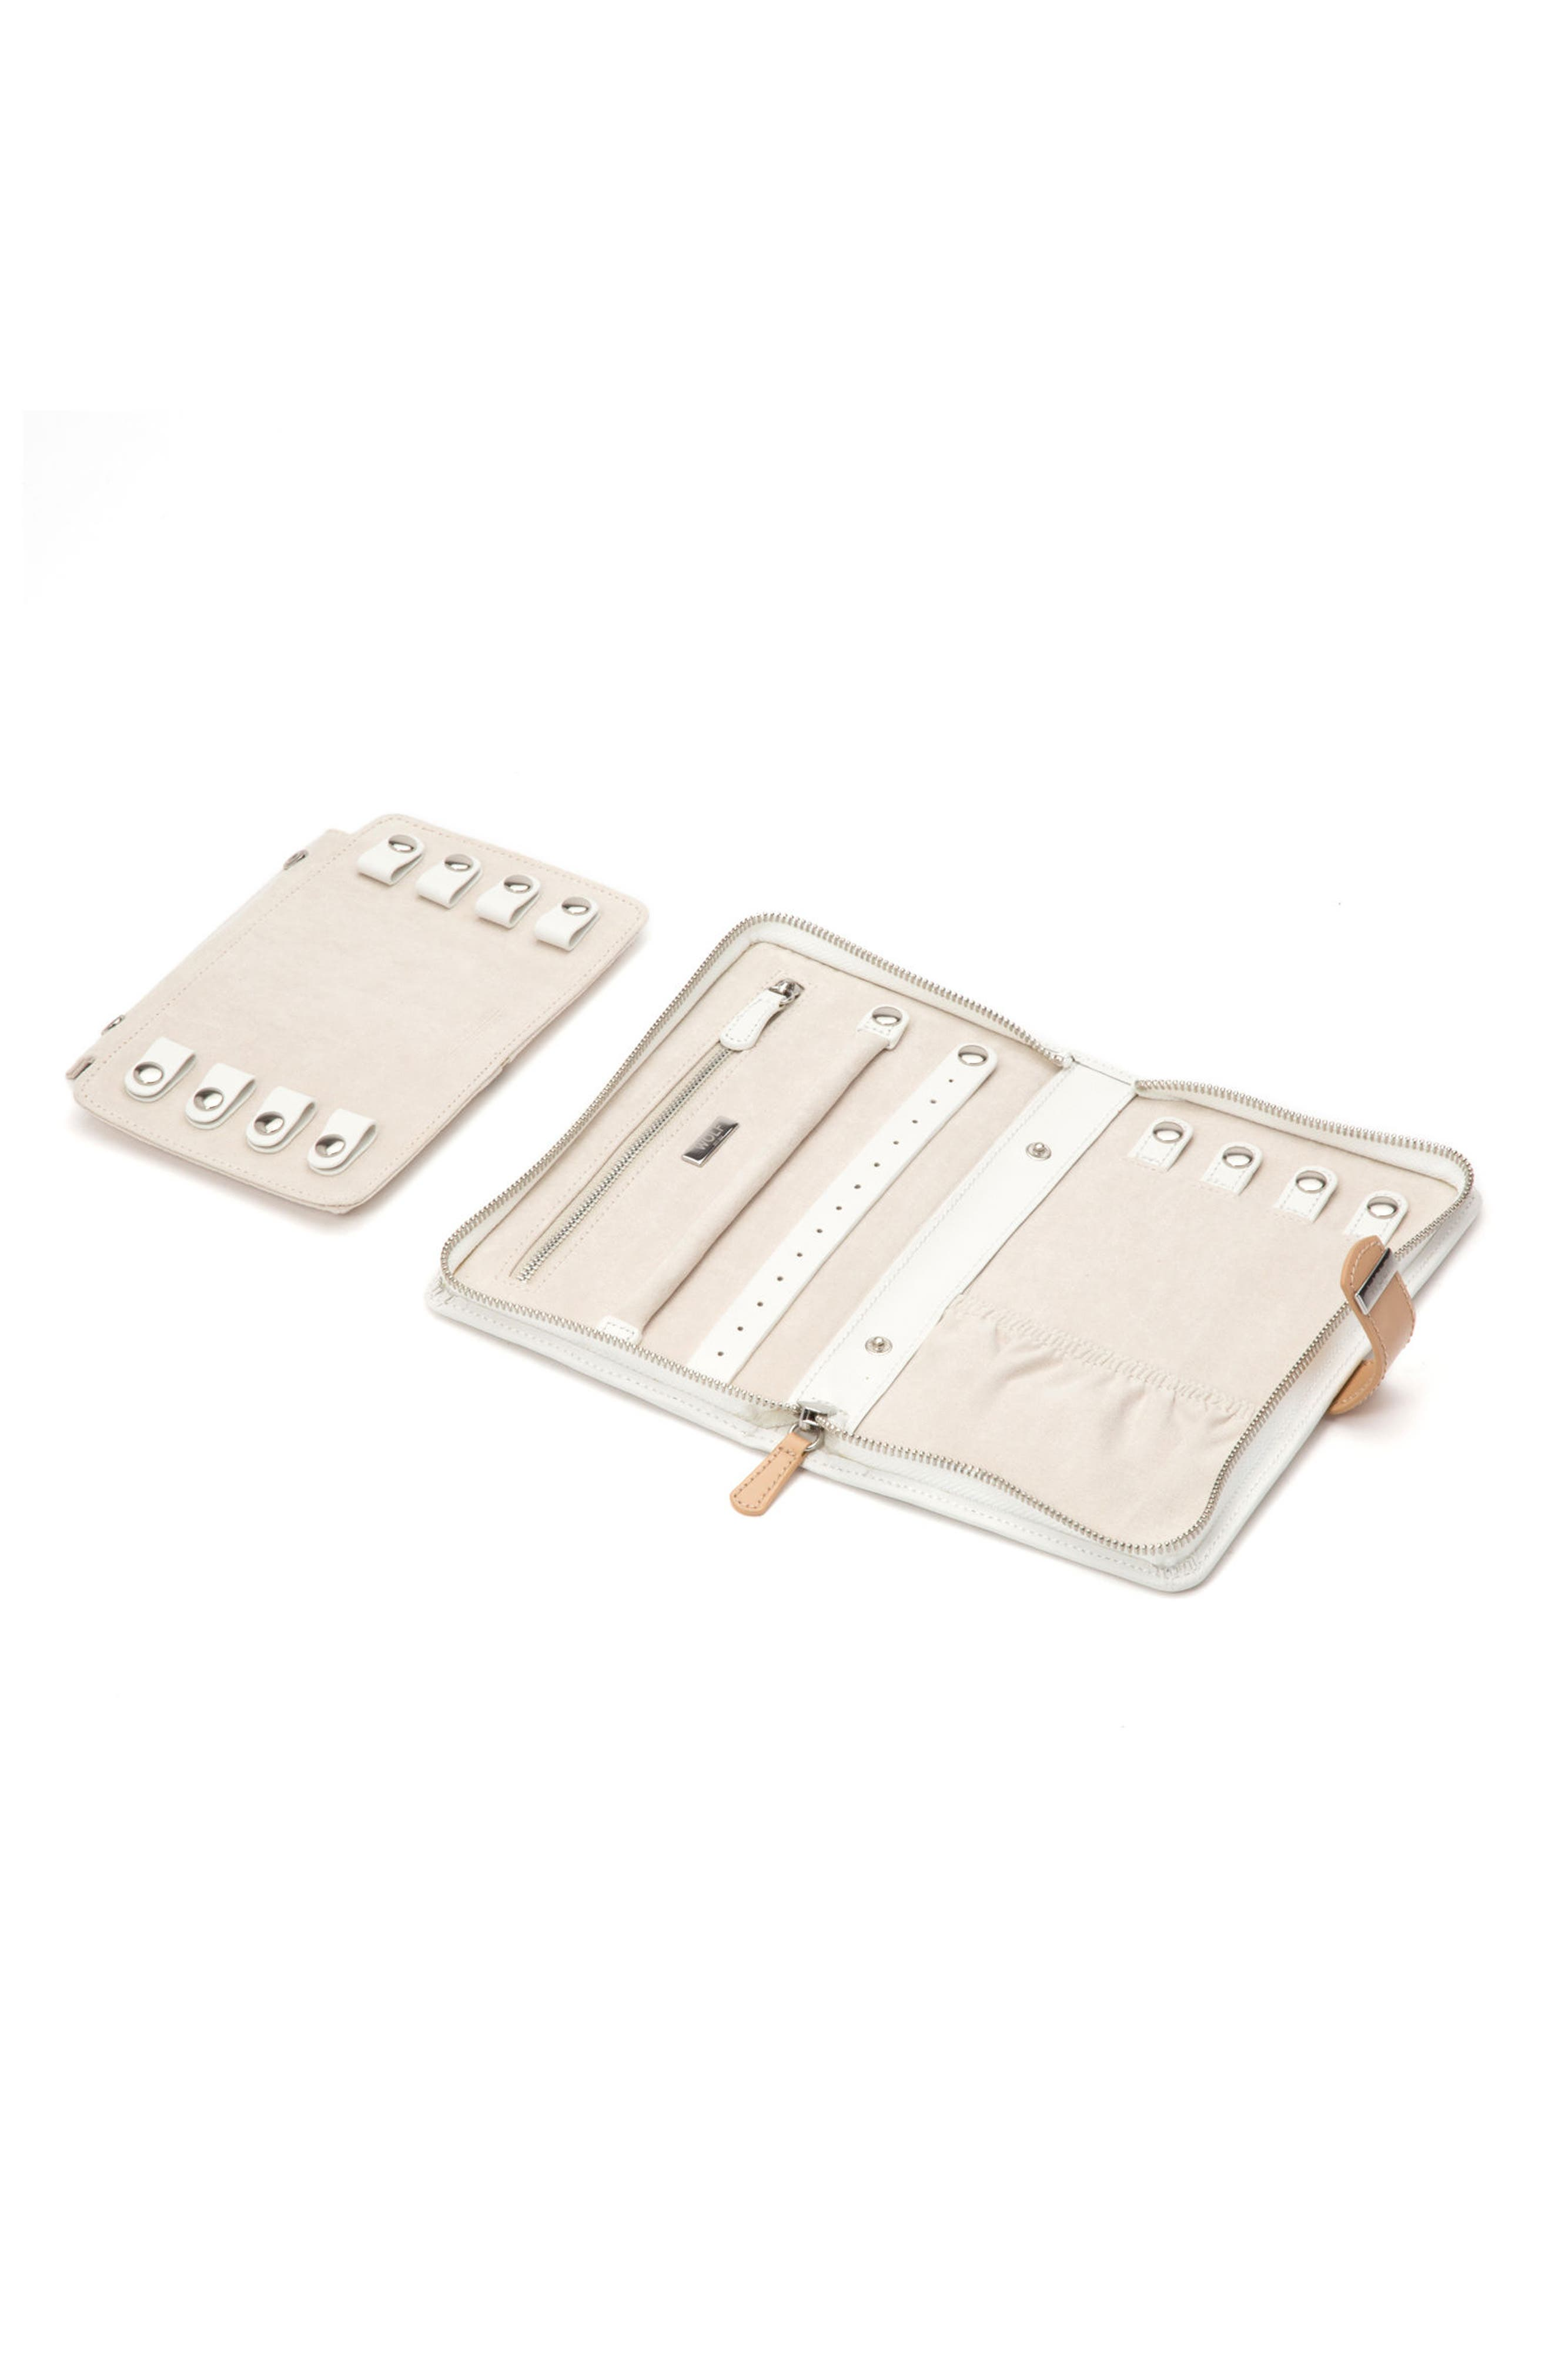 Blossom Leather Jewelry Portfolio,                             Alternate thumbnail 2, color,                             Ivory